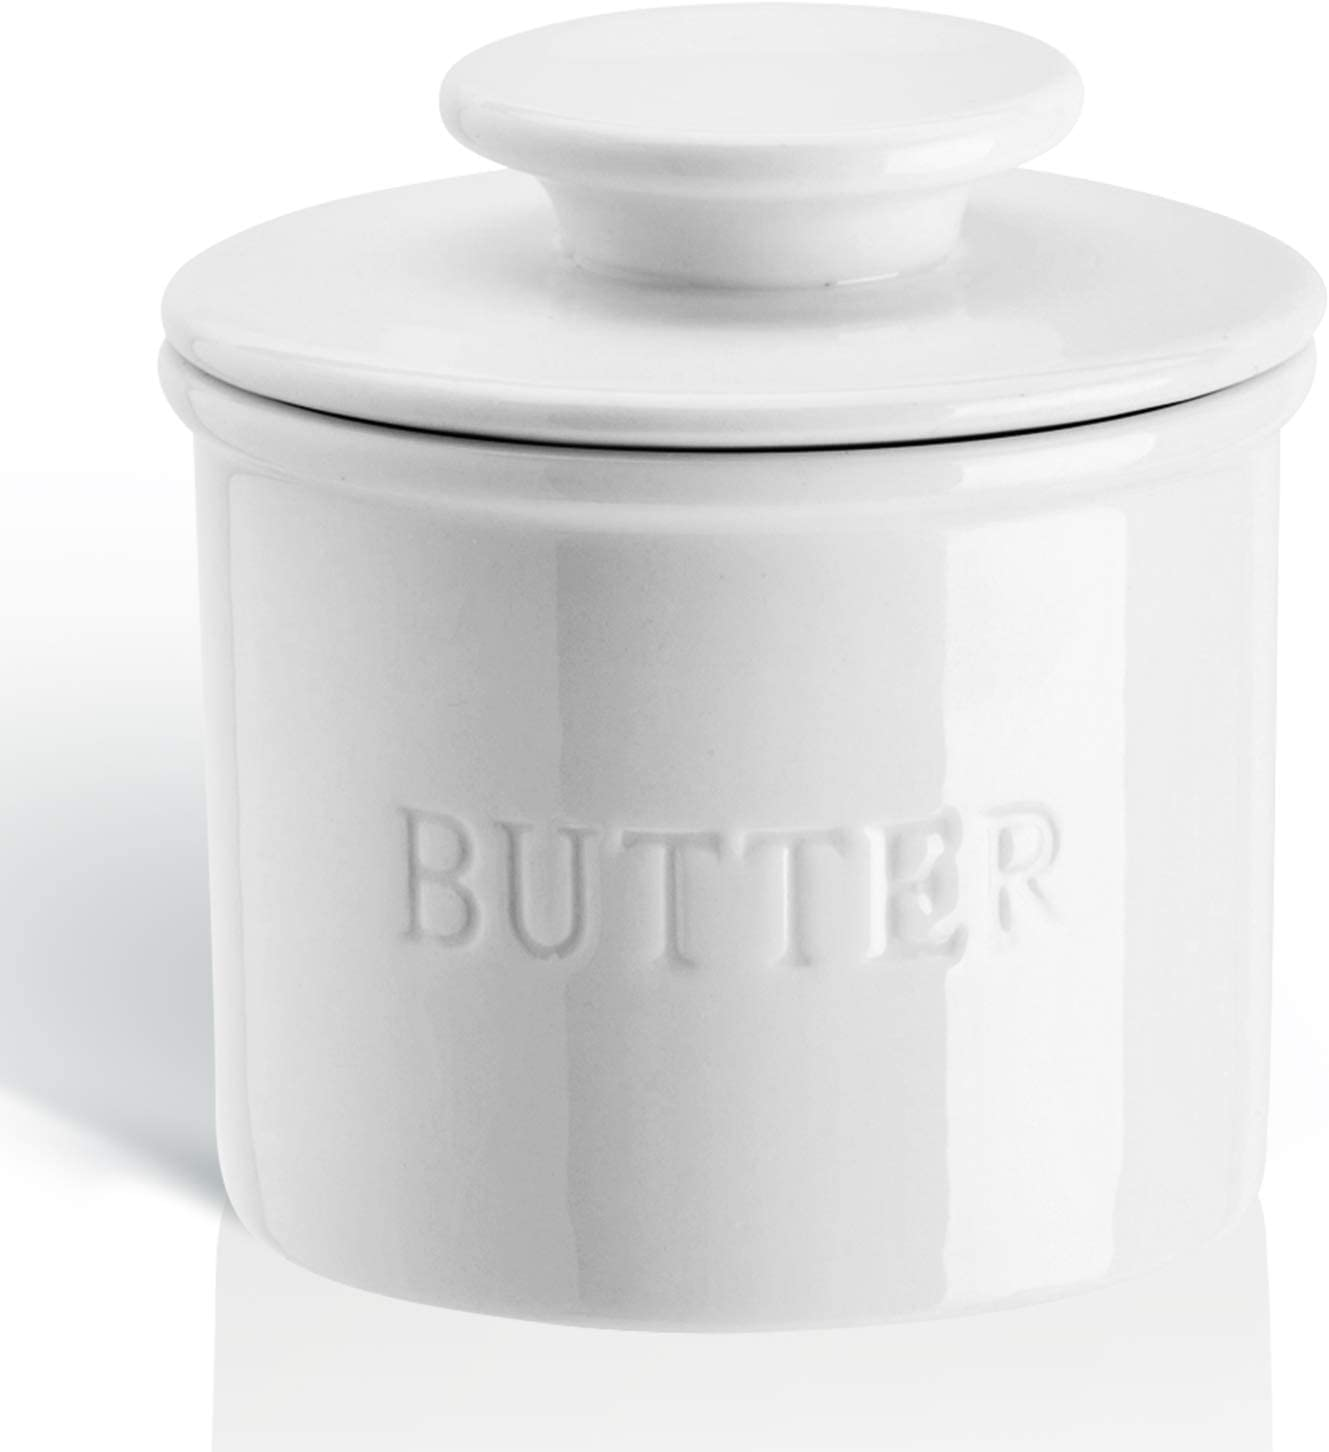 Shop Warome Butter Crock with Water from Amazon on Openhaus